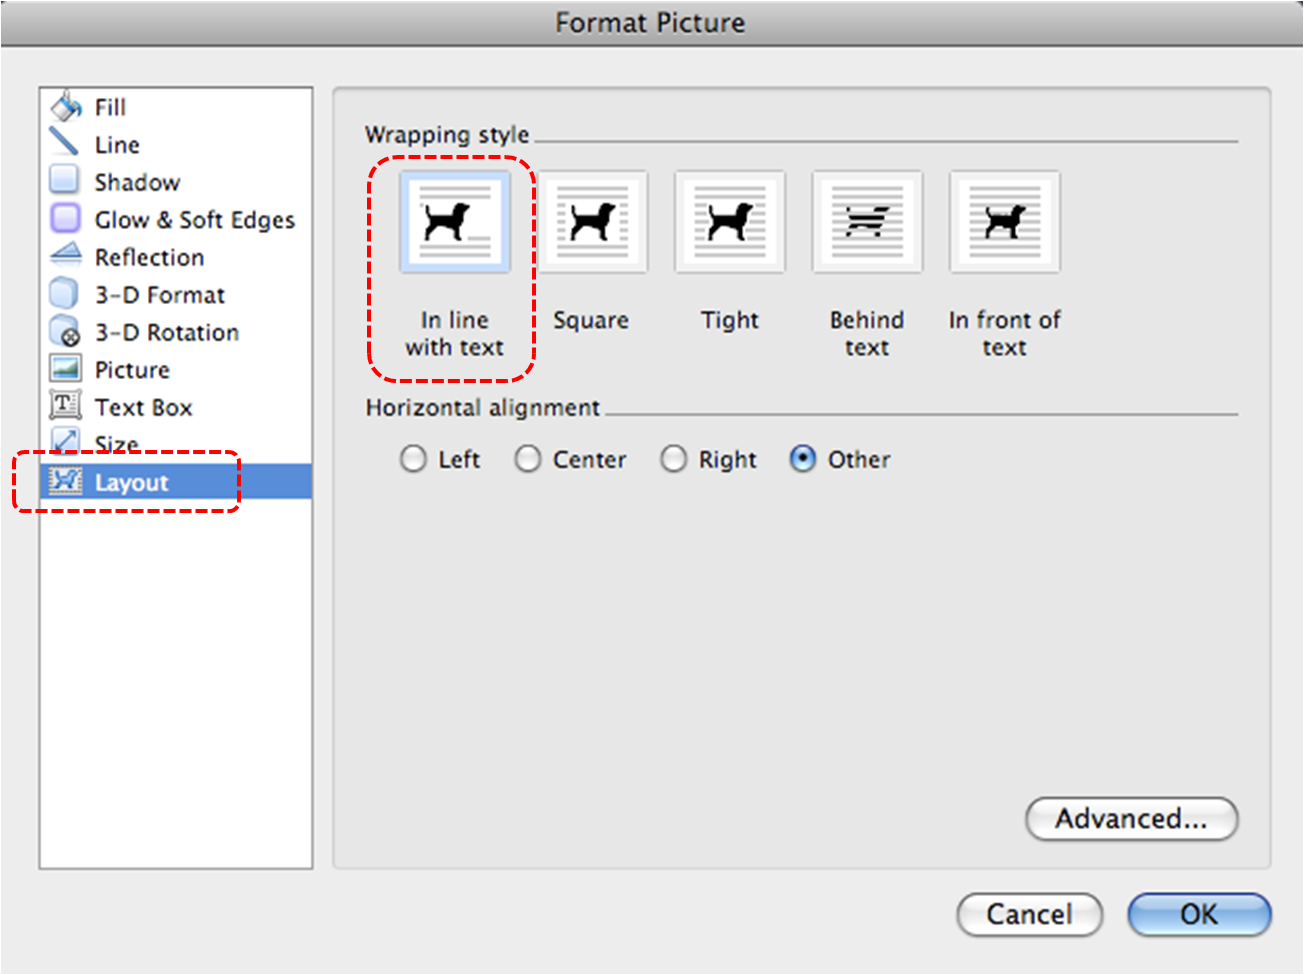 Image demonstrates location of Layout option and In line with text option in Format Picture dialog.